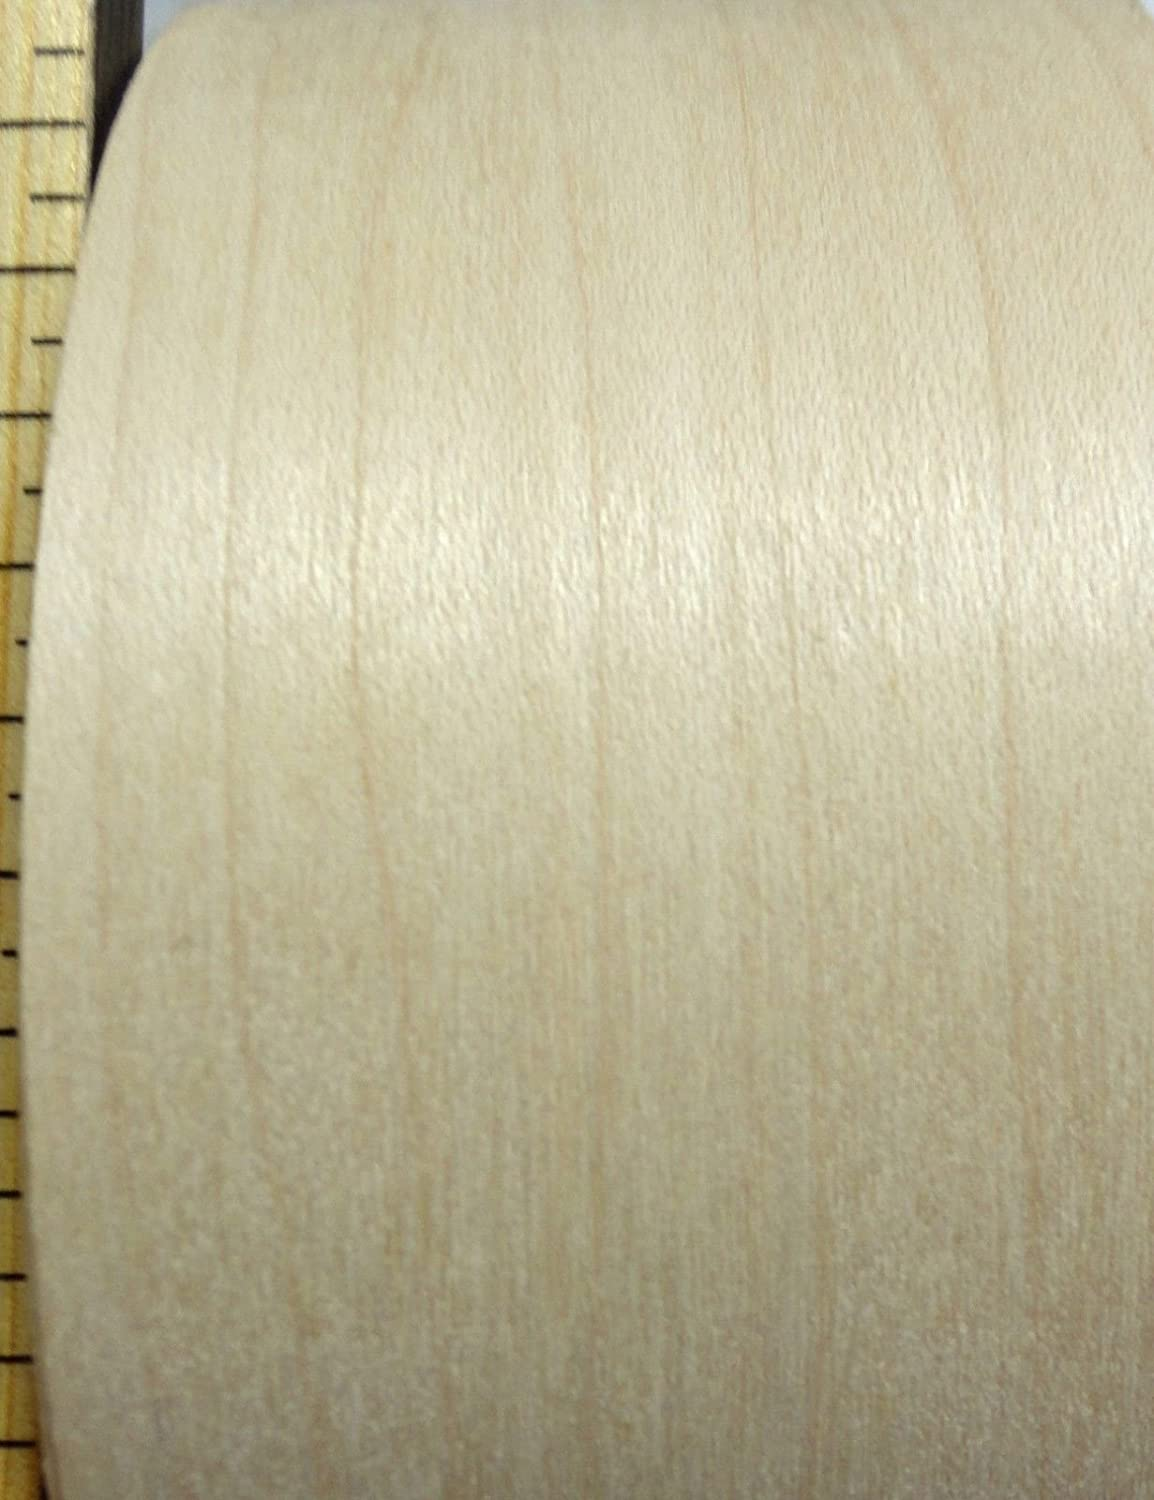 Maple wood veneer edgebanding roll 4 x 120 with preglued hot melt adhesive JSO Wood Products